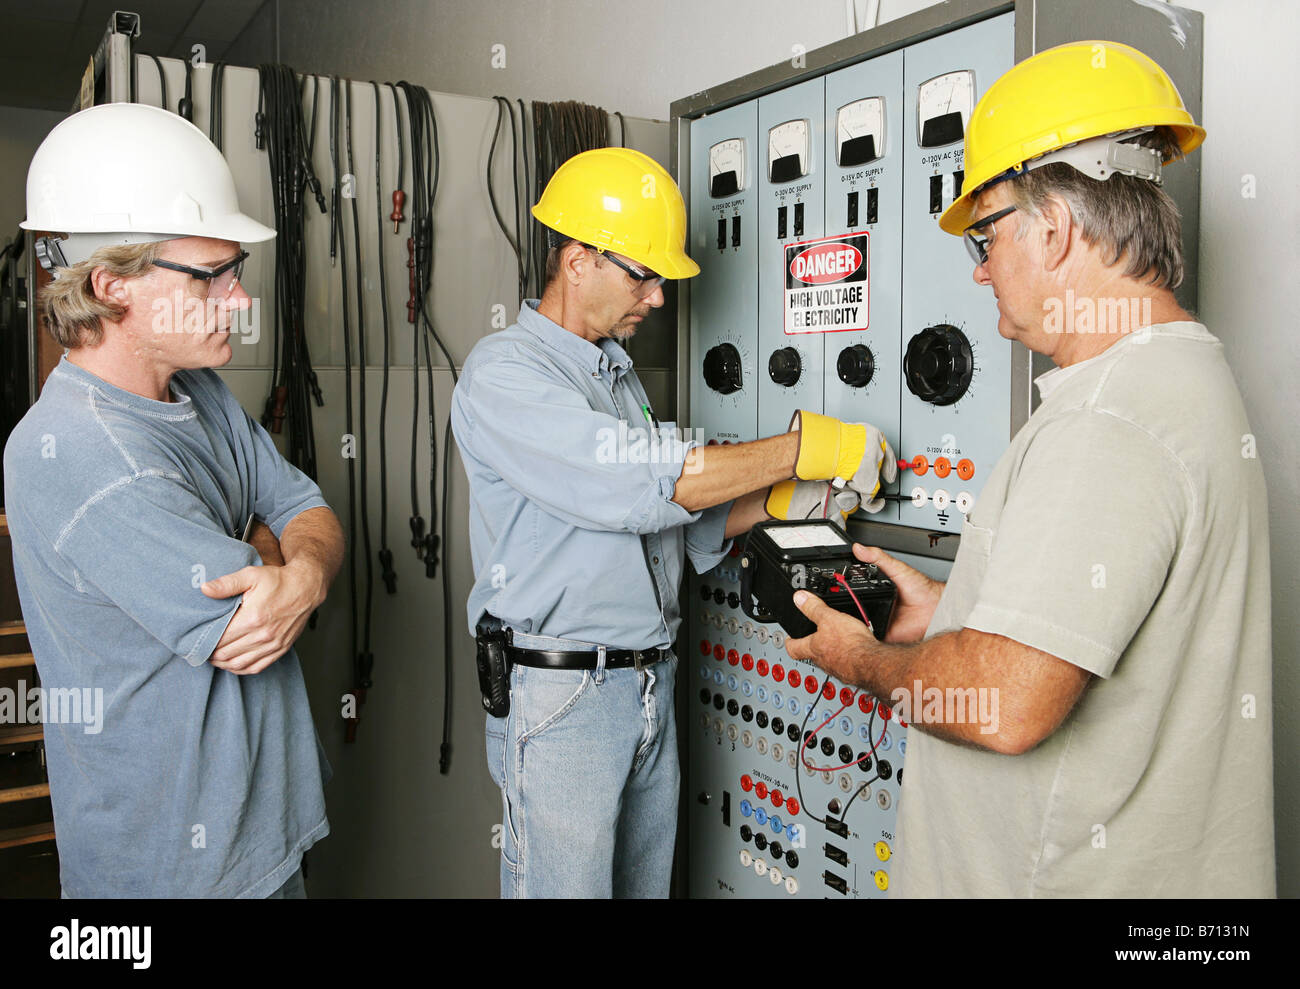 Electricians Working On An Industrial Power Distribution Center While Supervisor Watches All Work Being Performed To Code